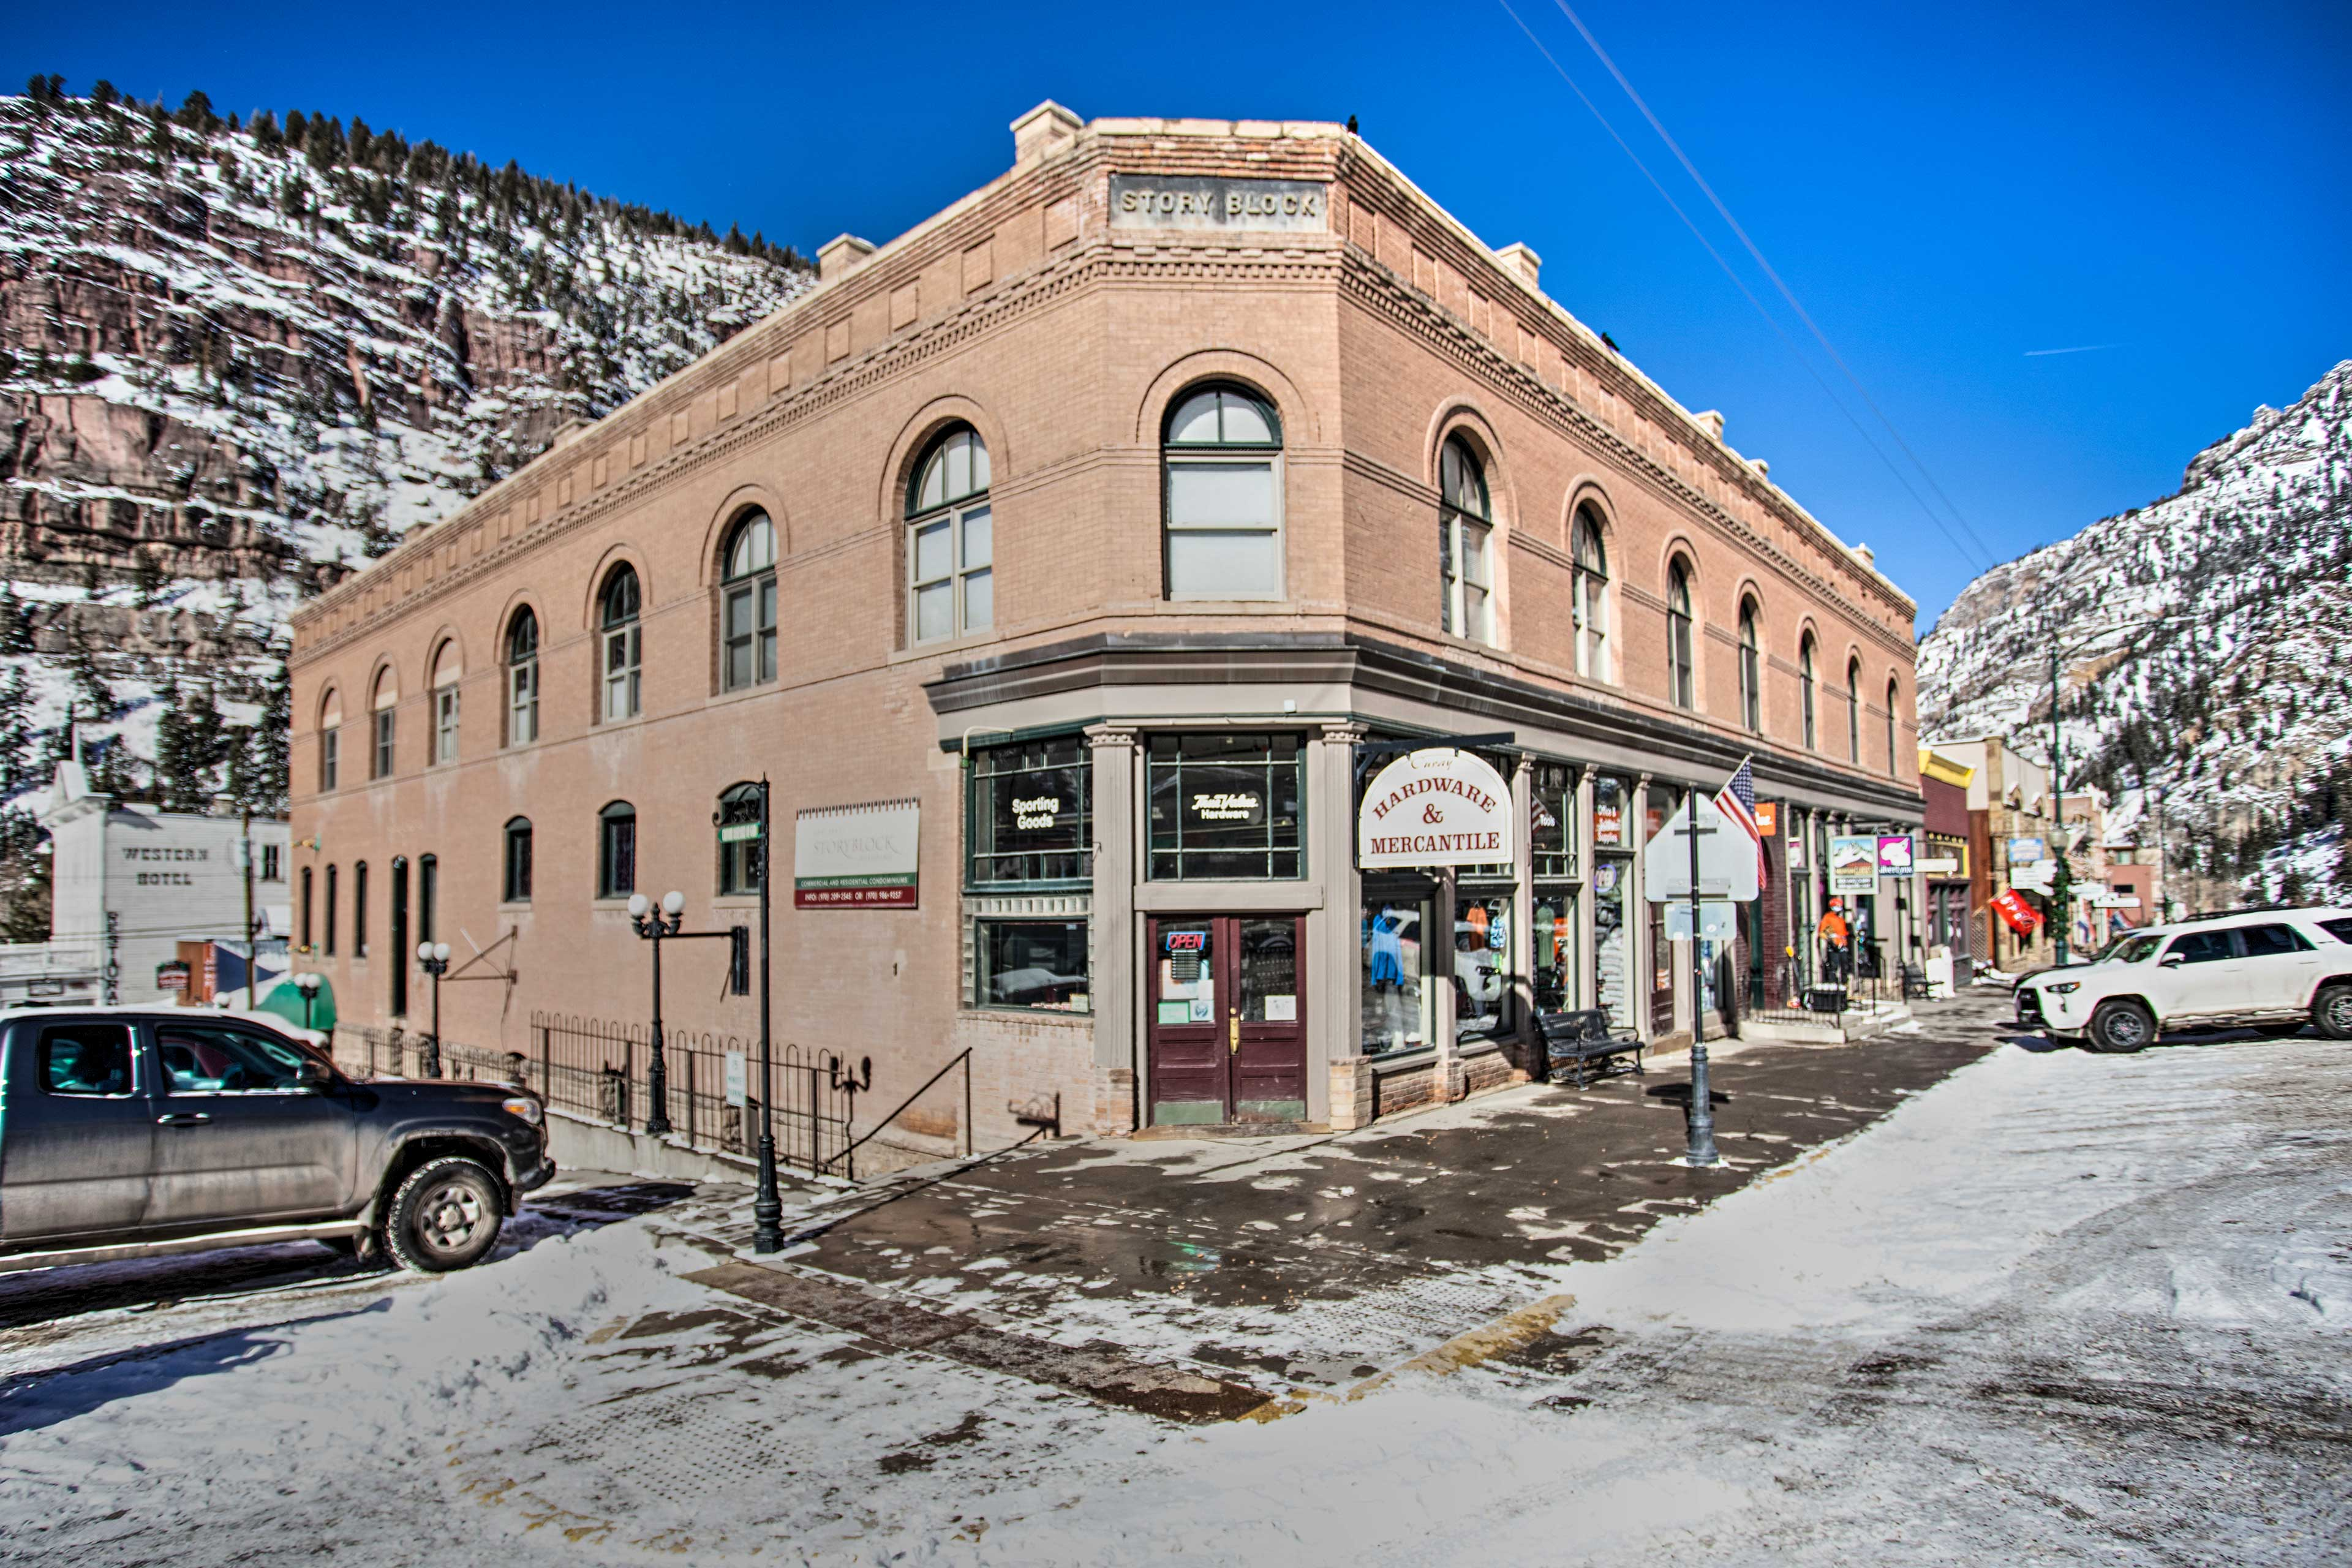 New Hallmark Hideaway Walk To Ouray Hot Springs Condominiums For Rent In Ouray Colorado United States